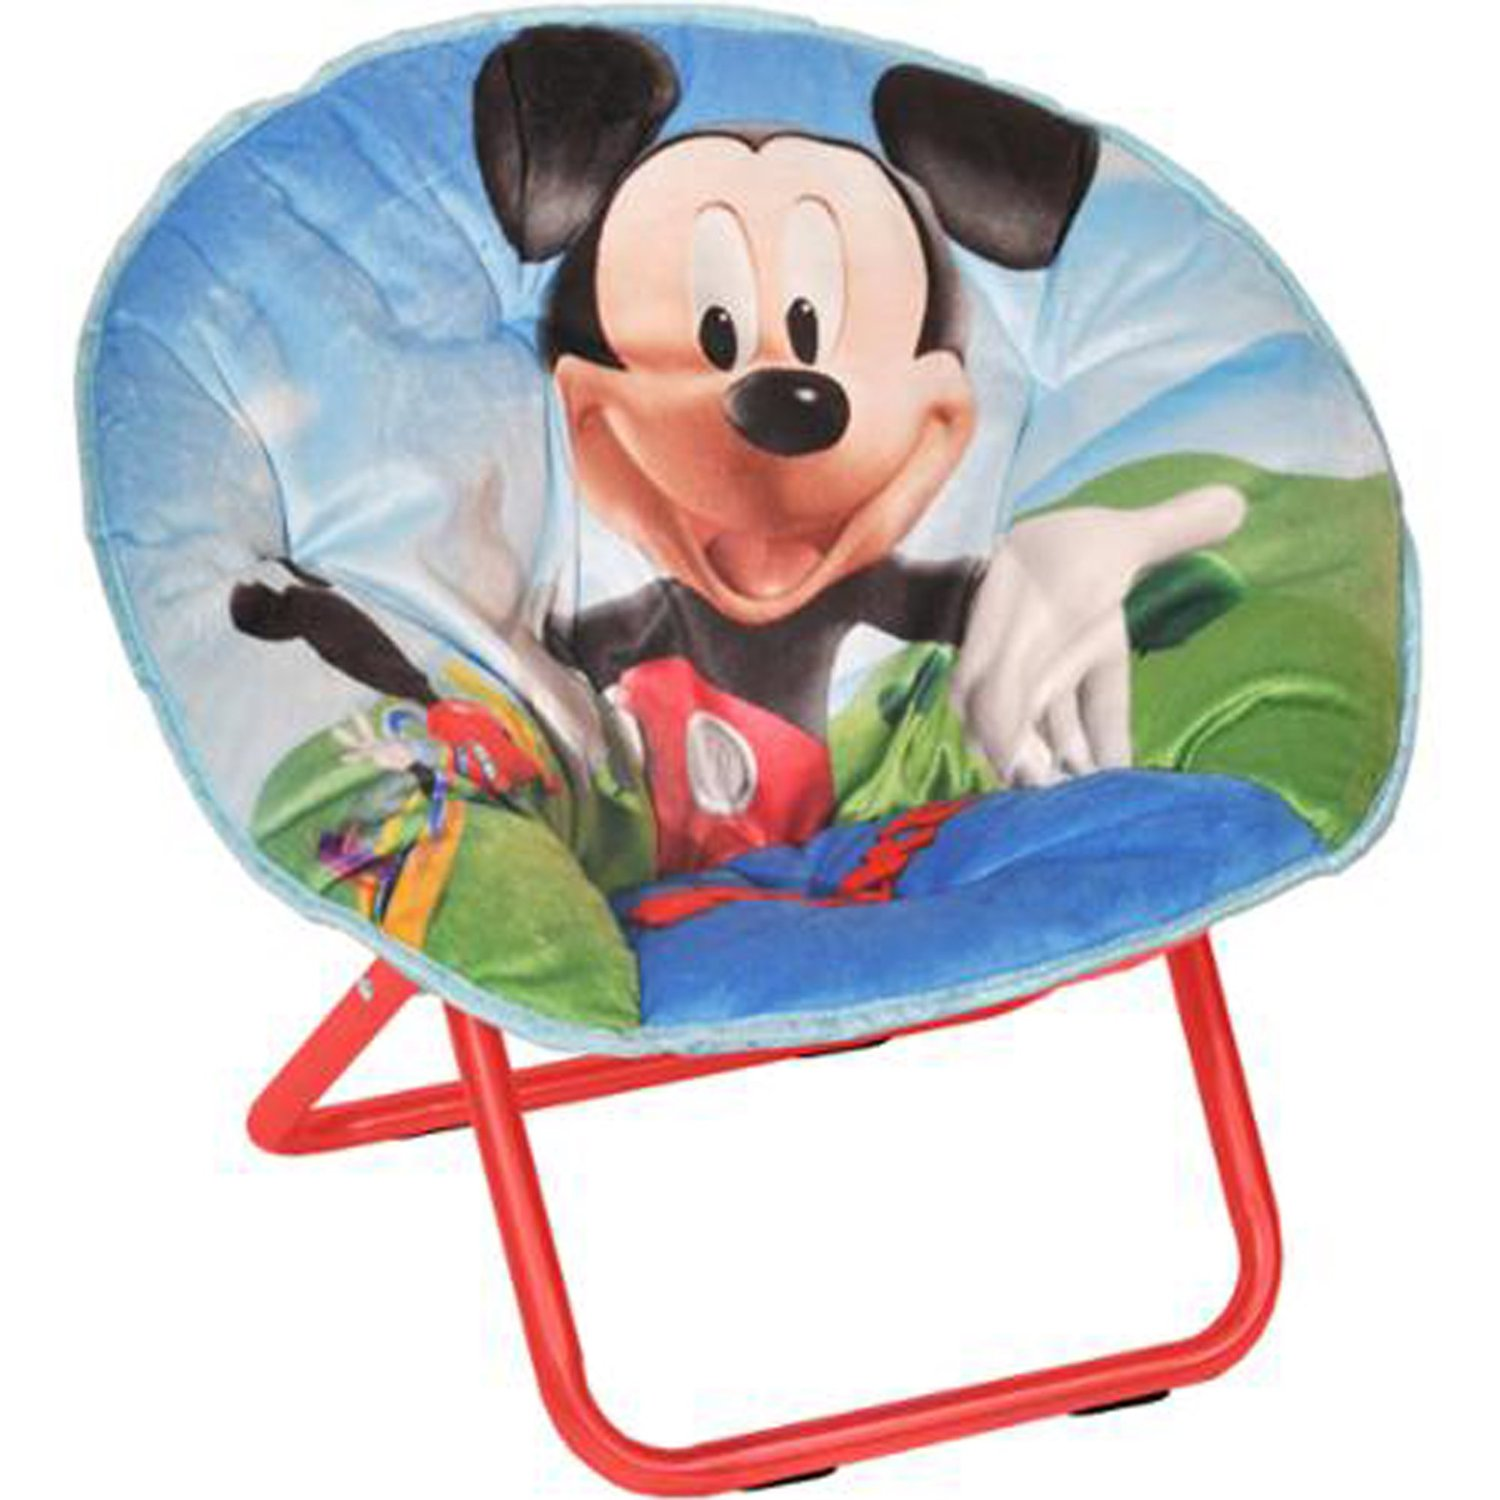 Mickey Mouse Mini Saucer Chair Multicolor Toddler Kids Seat Portable  Character Comfortable Seating Saucer Shape Sturdy